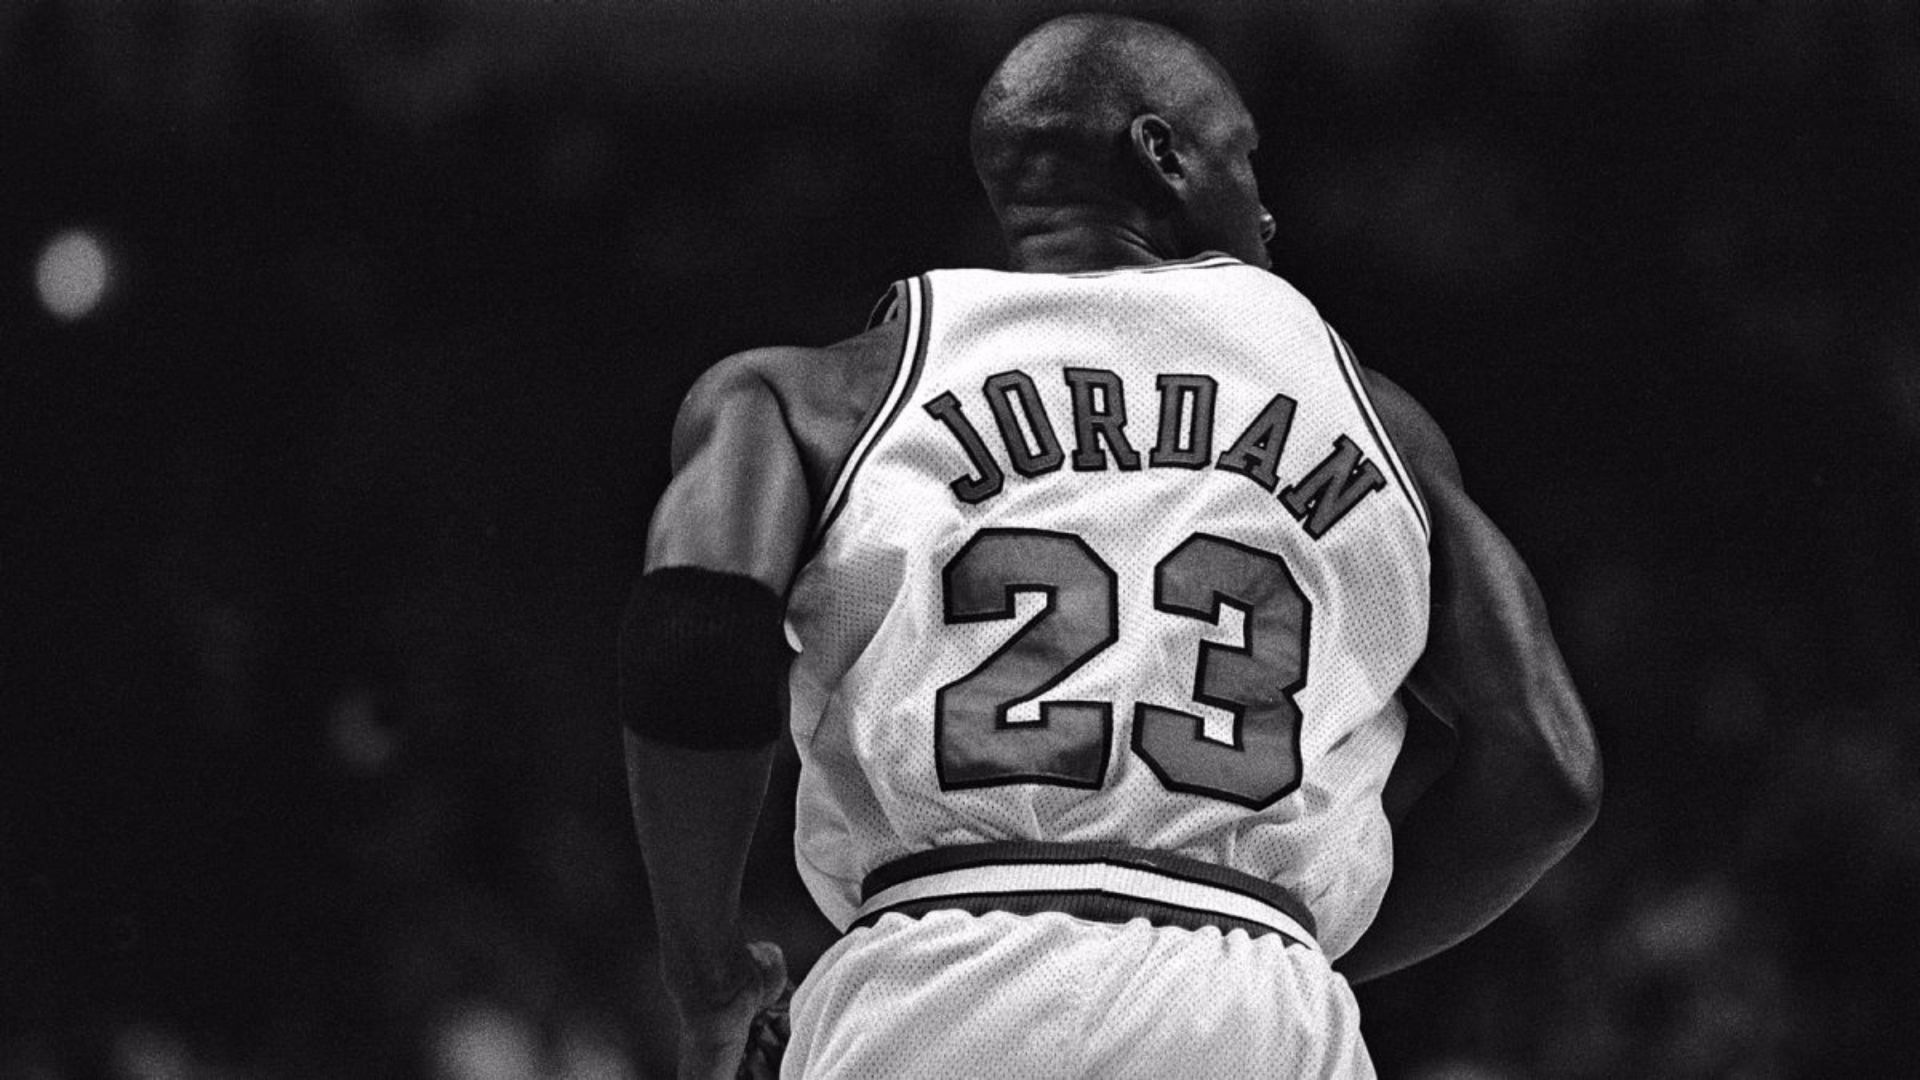 michael-jordan-black-and-white-Wallpaper-HD-number-Xh1